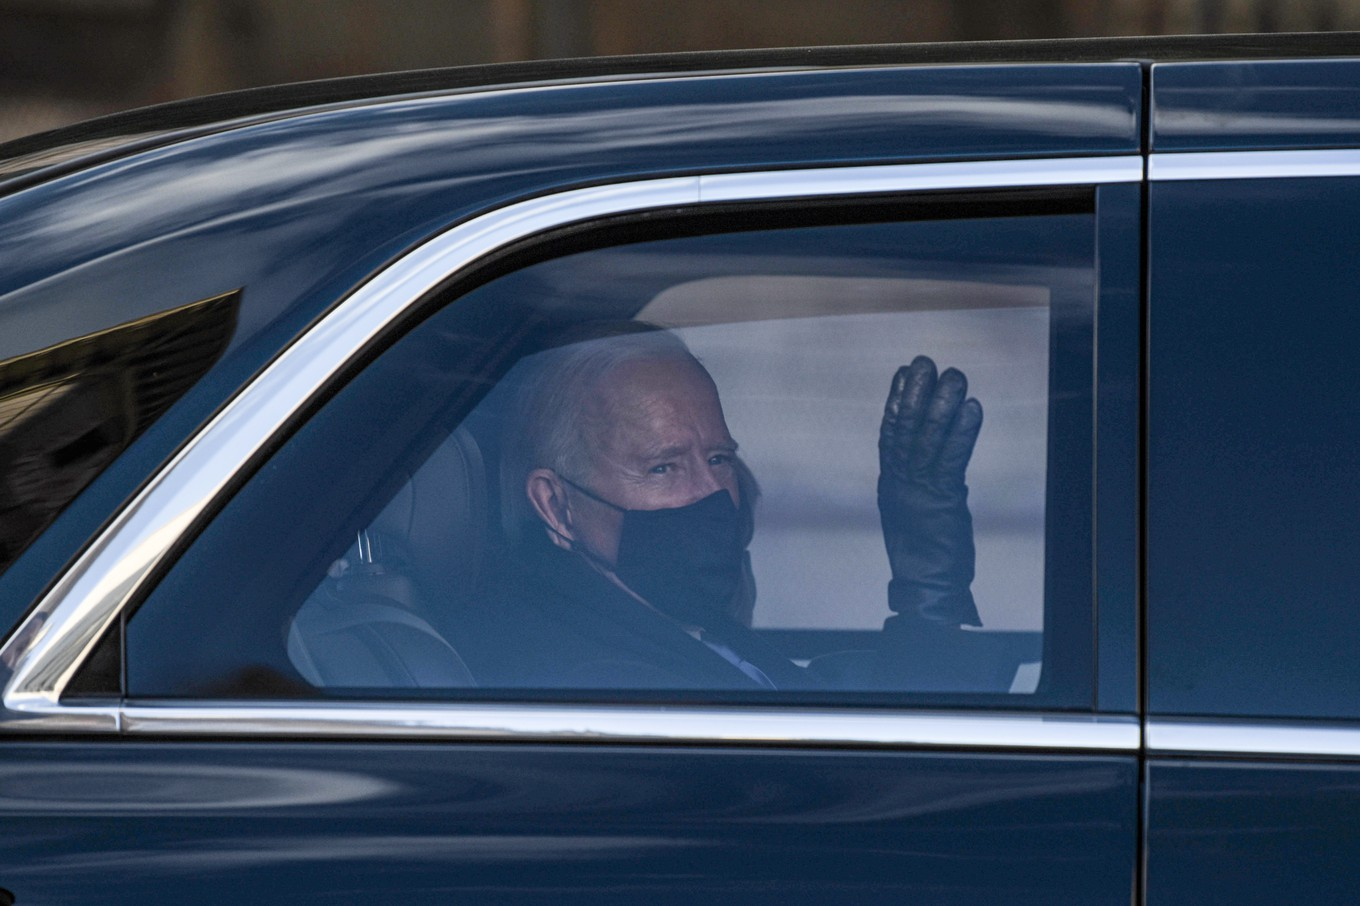 US President Joe Biden waves to supporters along the motorcade route in Washington, DC, January 20,2021after being sworn in as the 46th President of the United States. (Photo by SETH HERALD / AFP)